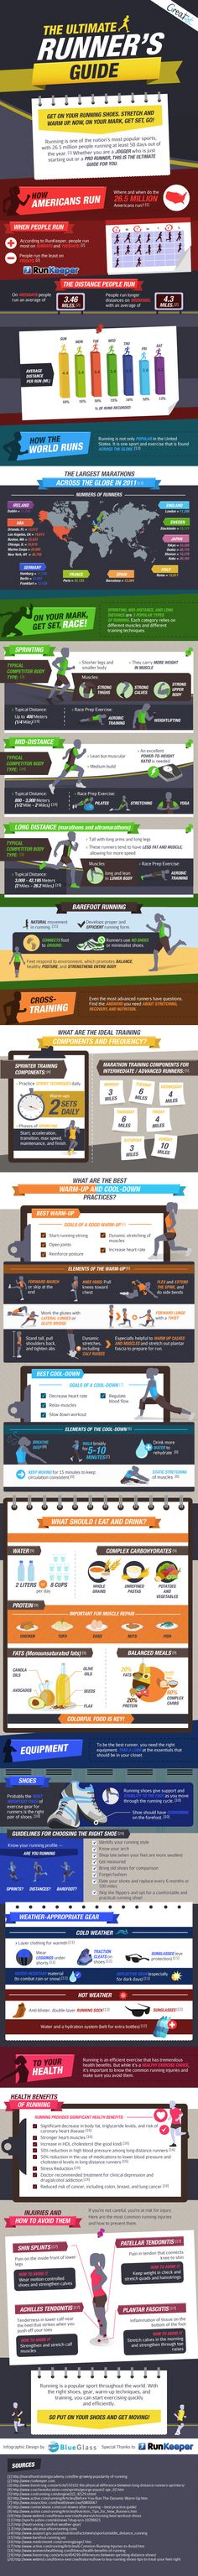 Ultimate Runner's Guide (Infographic)